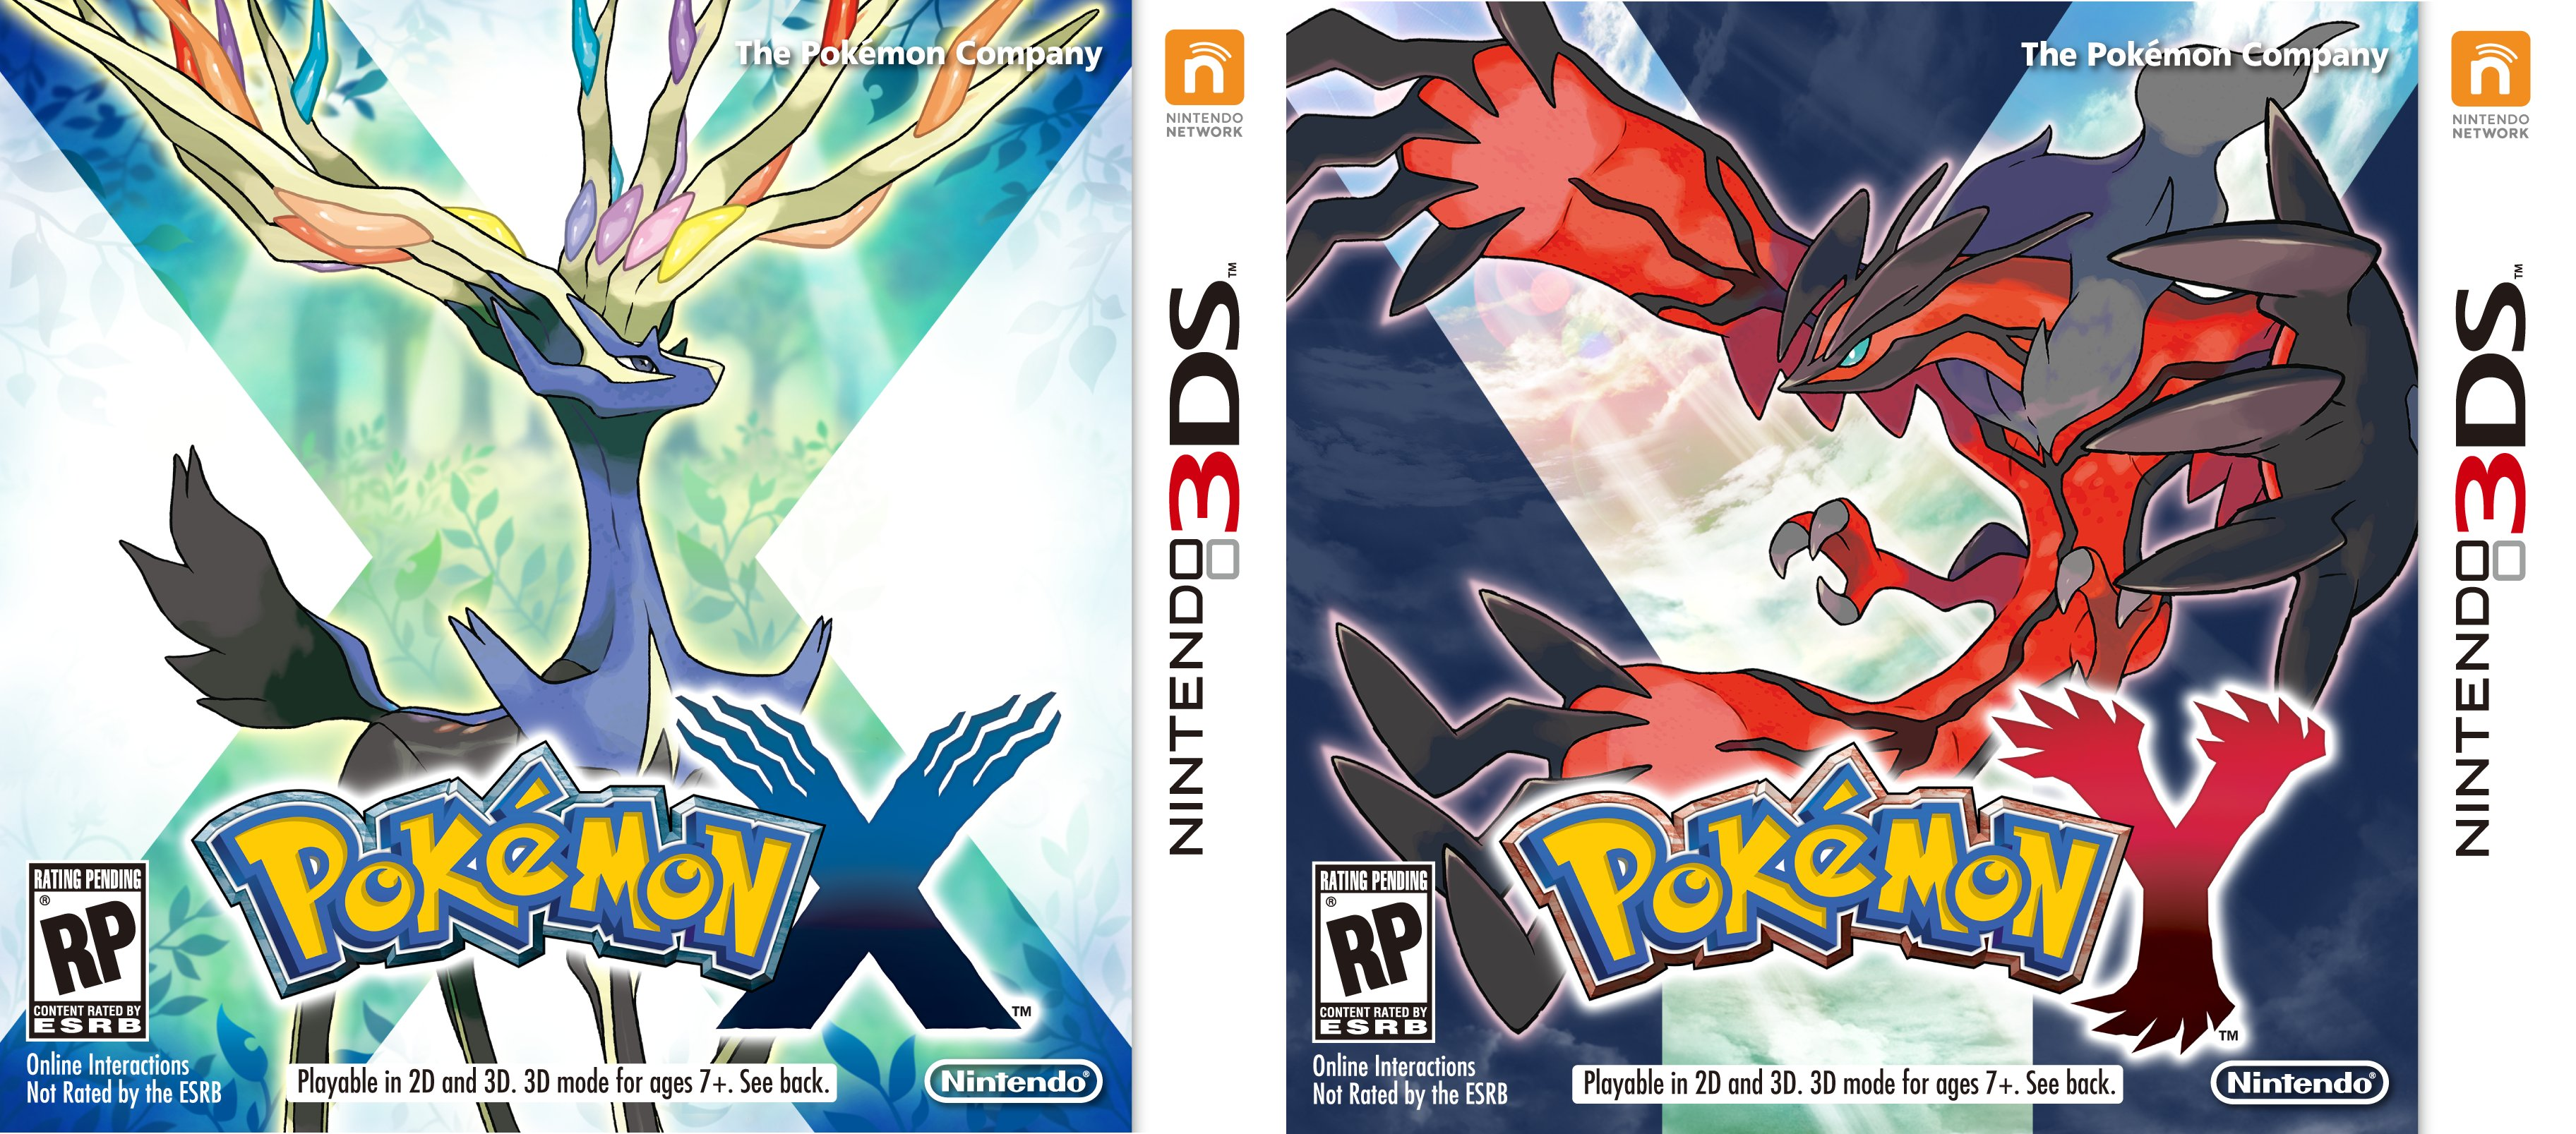 Pokemon Gen 6 Anime Characters : Pokémon and y video games released for nintendo ds